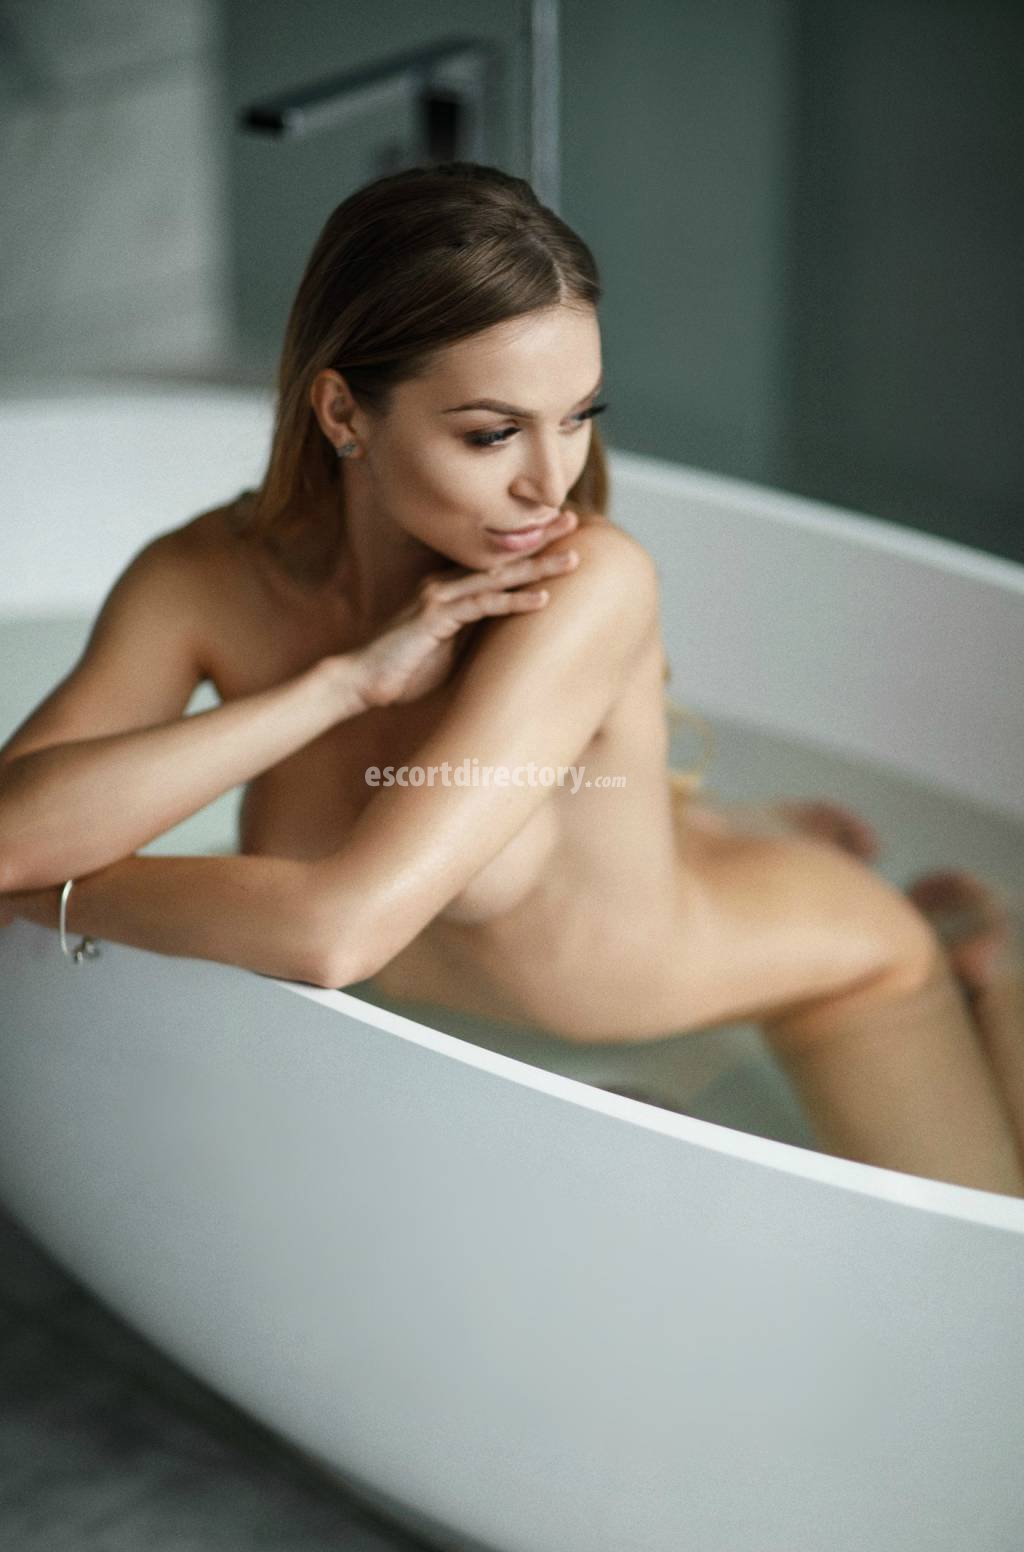 Warsaw independent escorts outcall